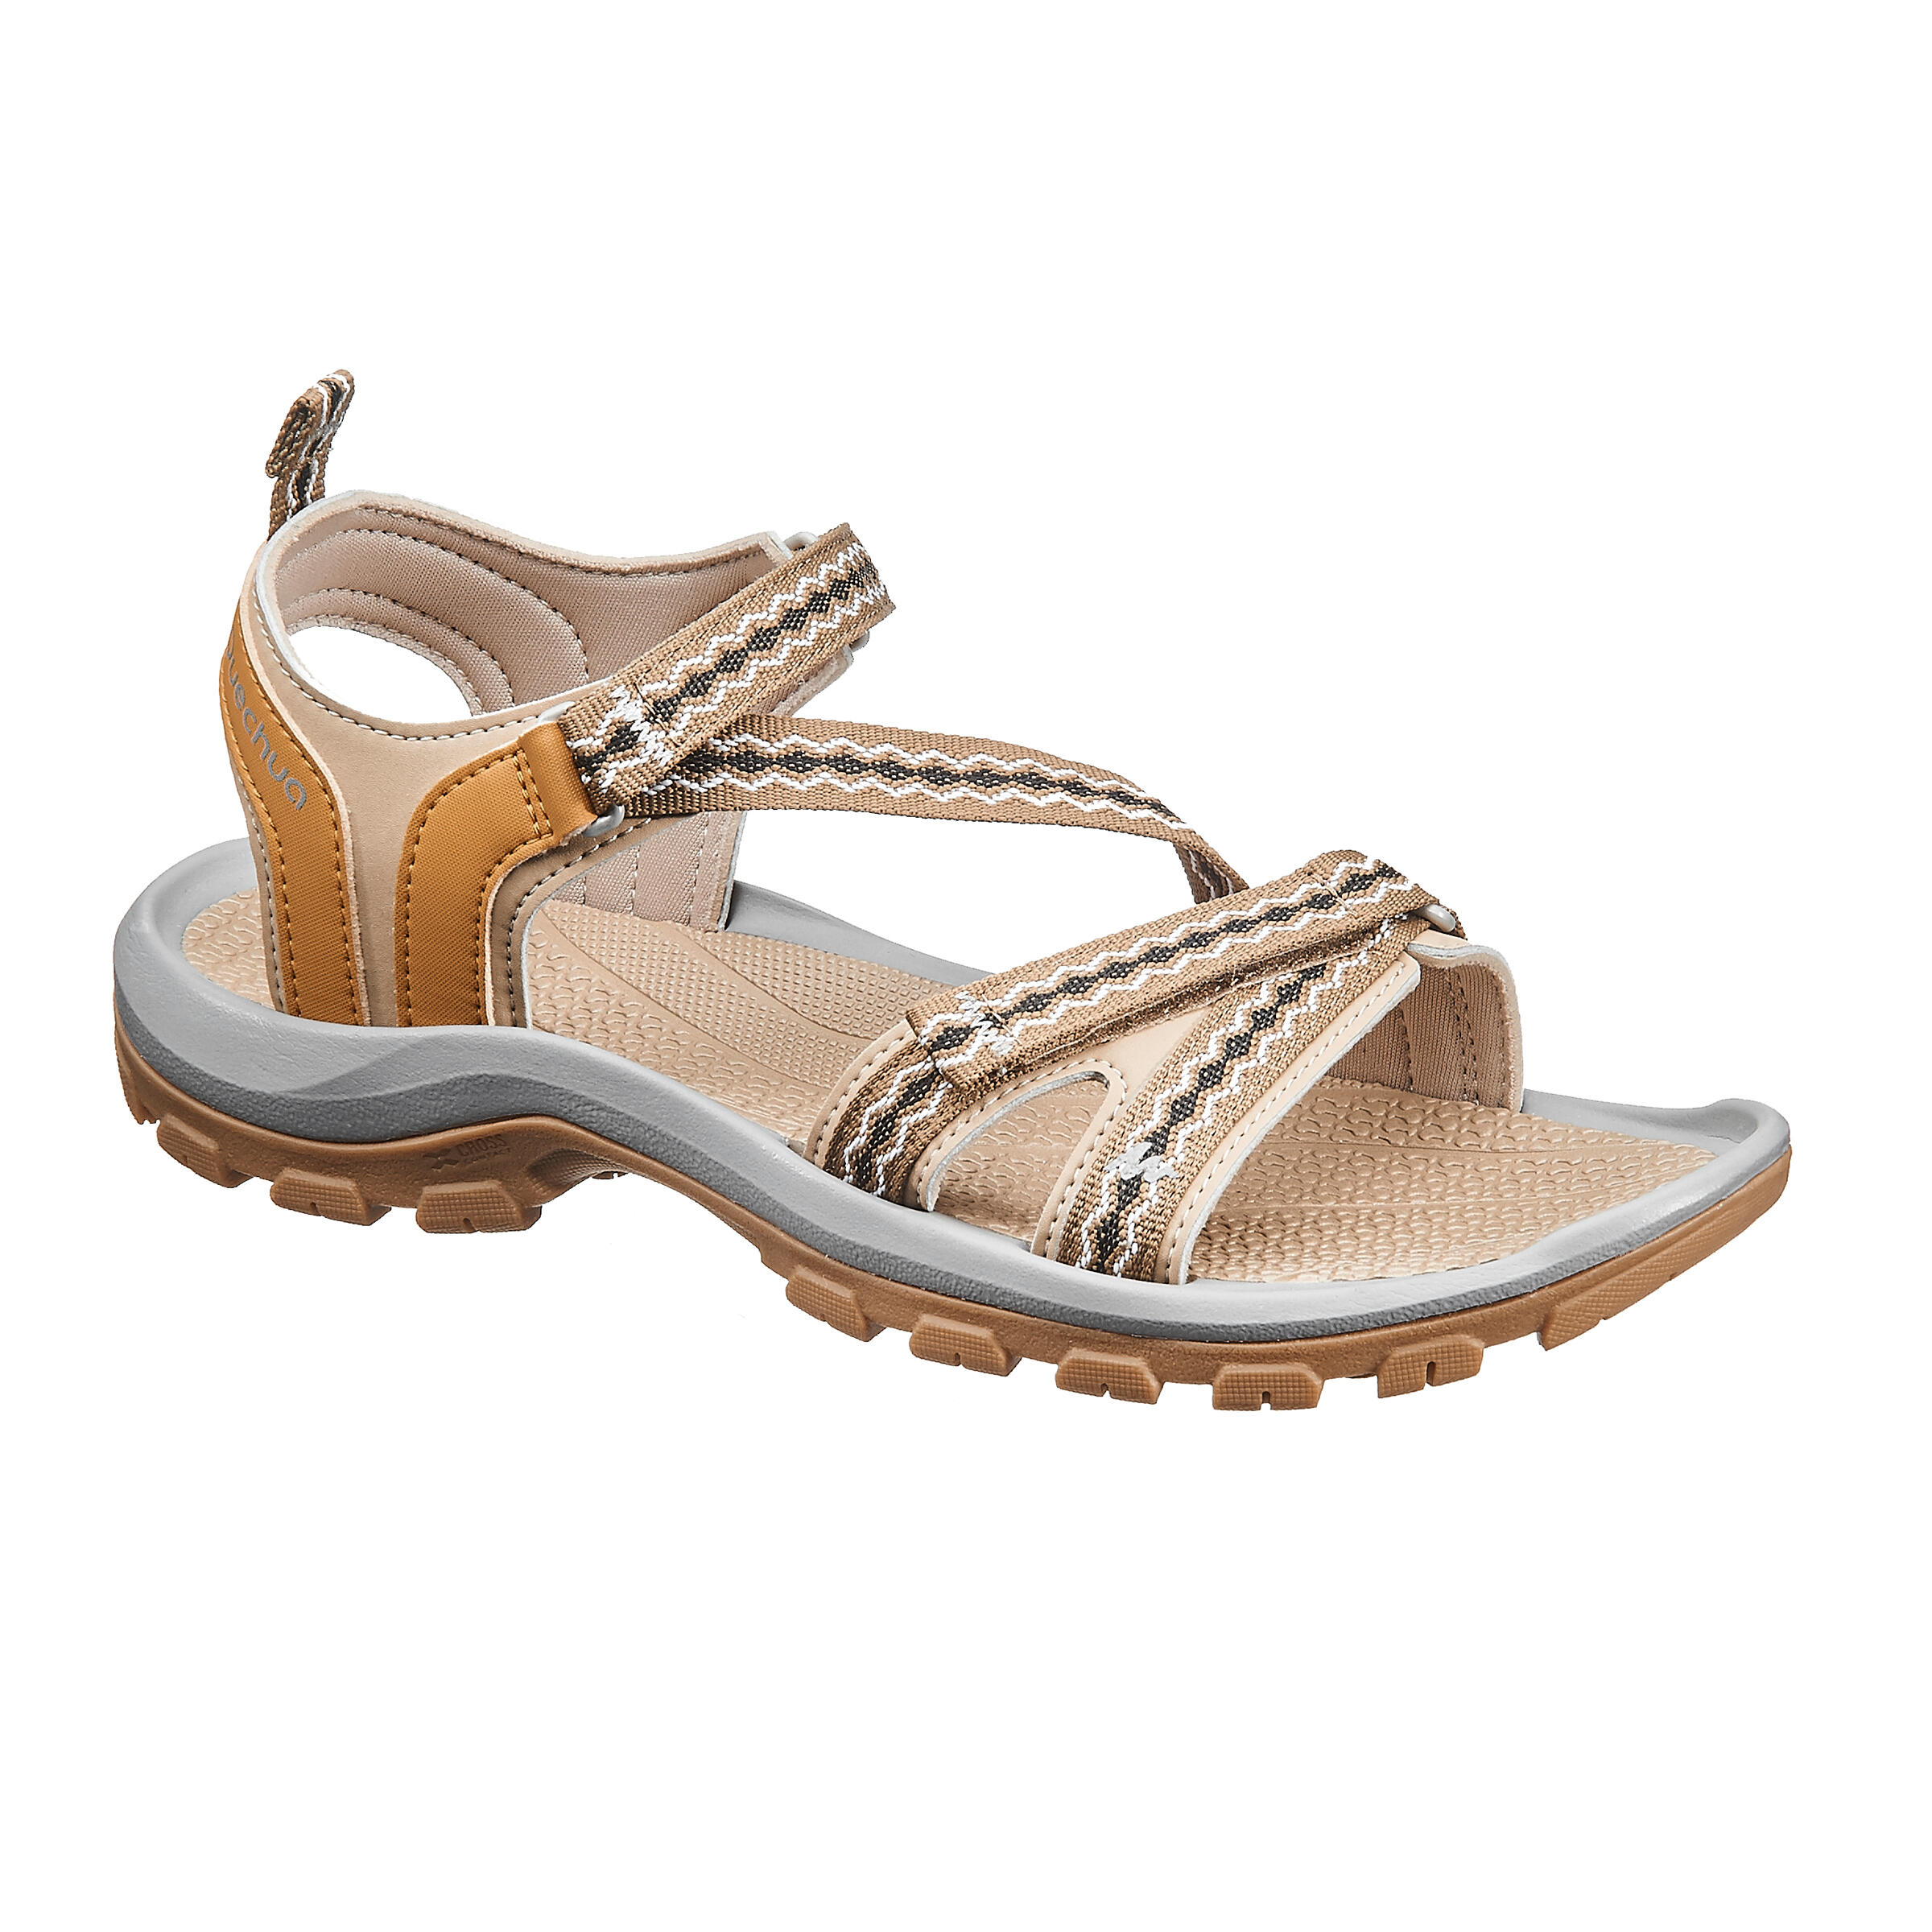 Hiking 100 Pink Sandal Women arpenaz Shop Online ynwOmN8v0